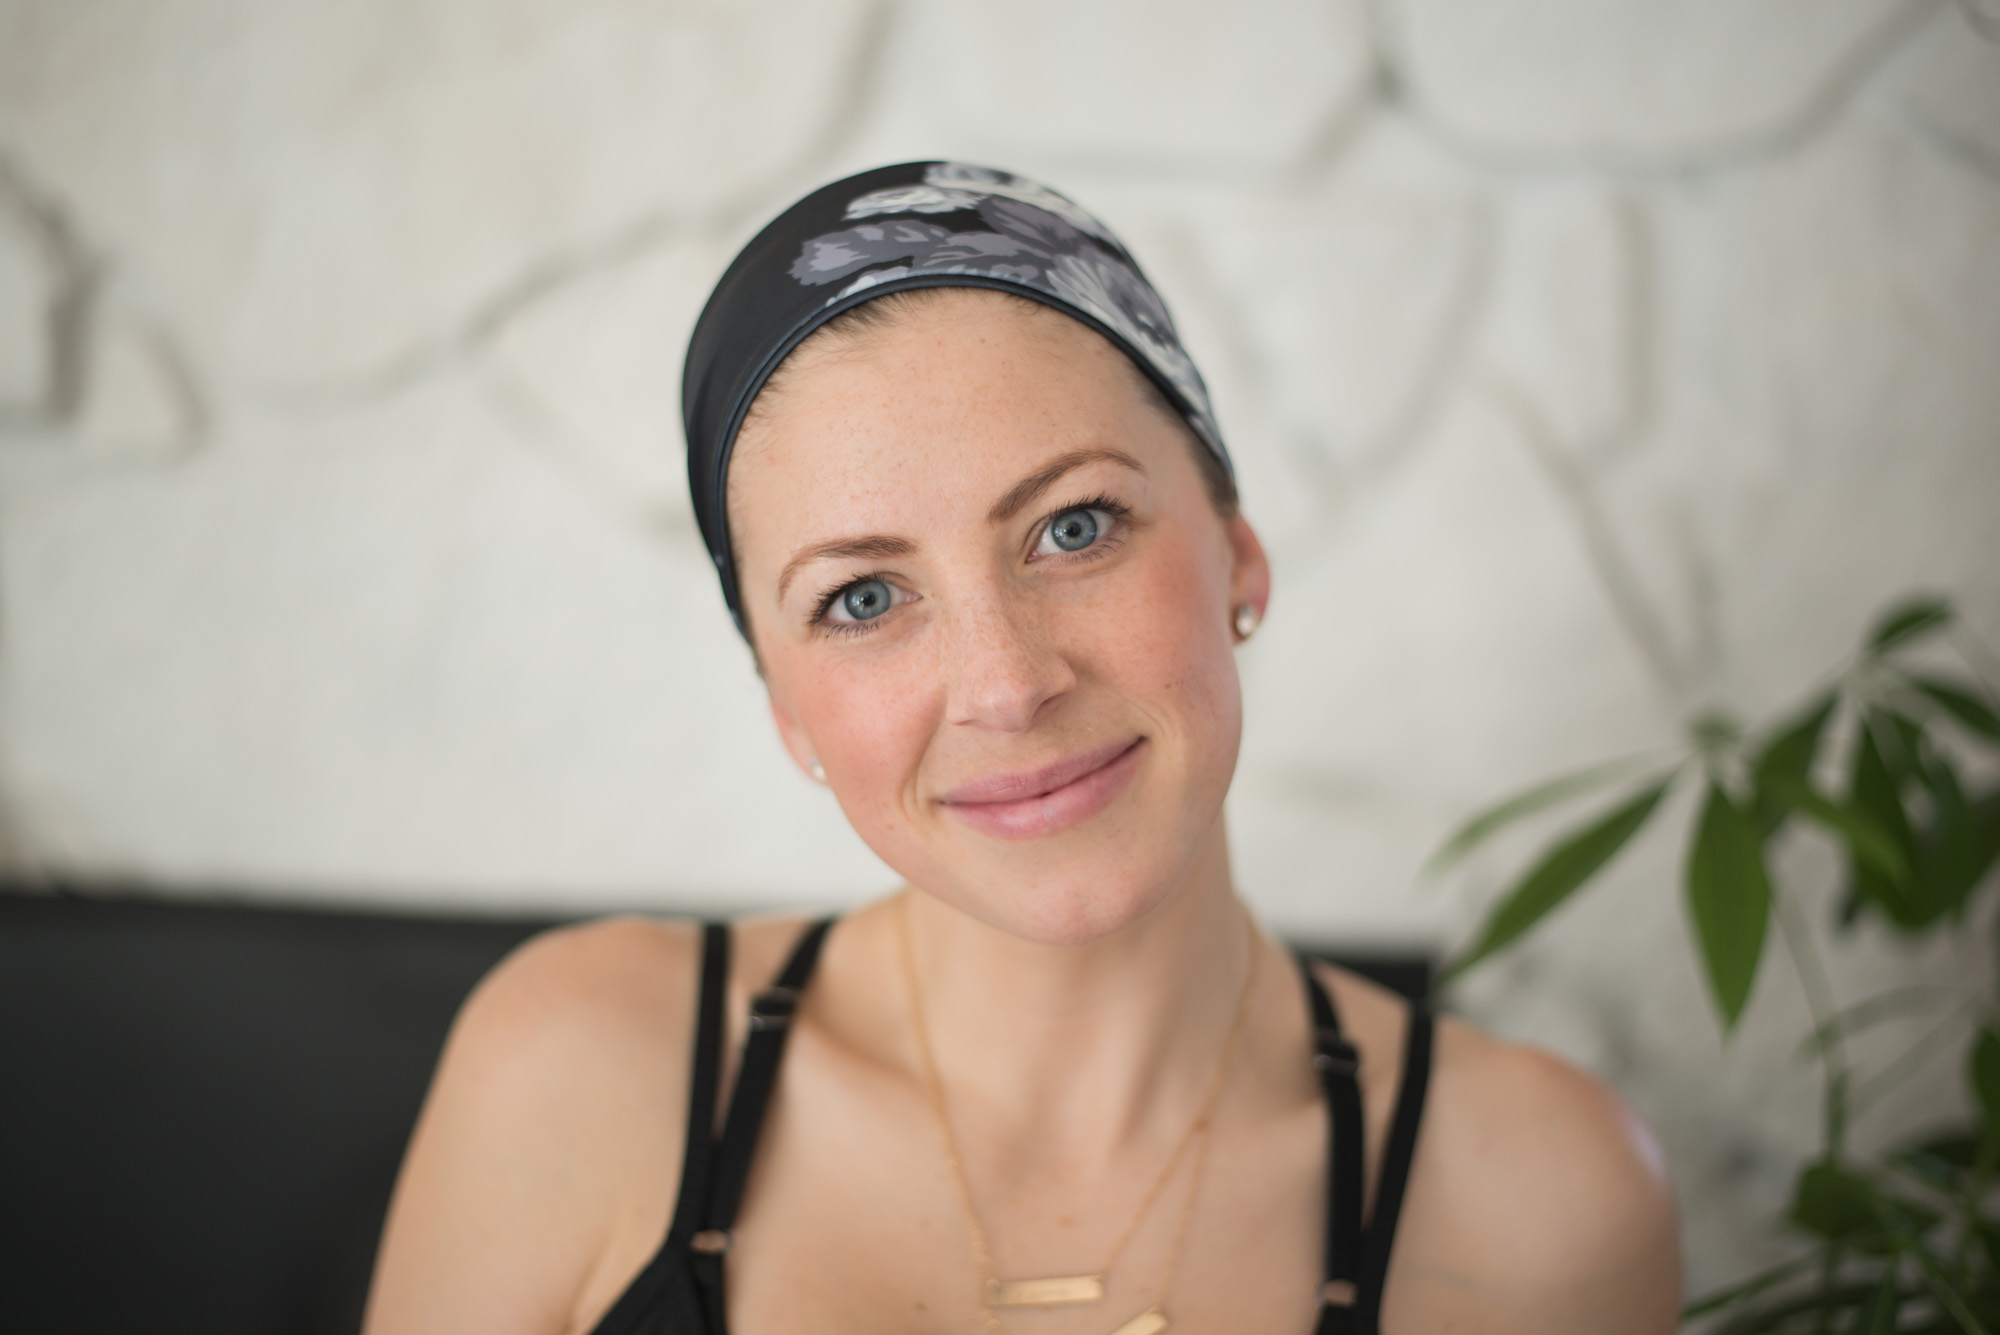 3 ways to style your hair for the gym with one headband from Albion fit